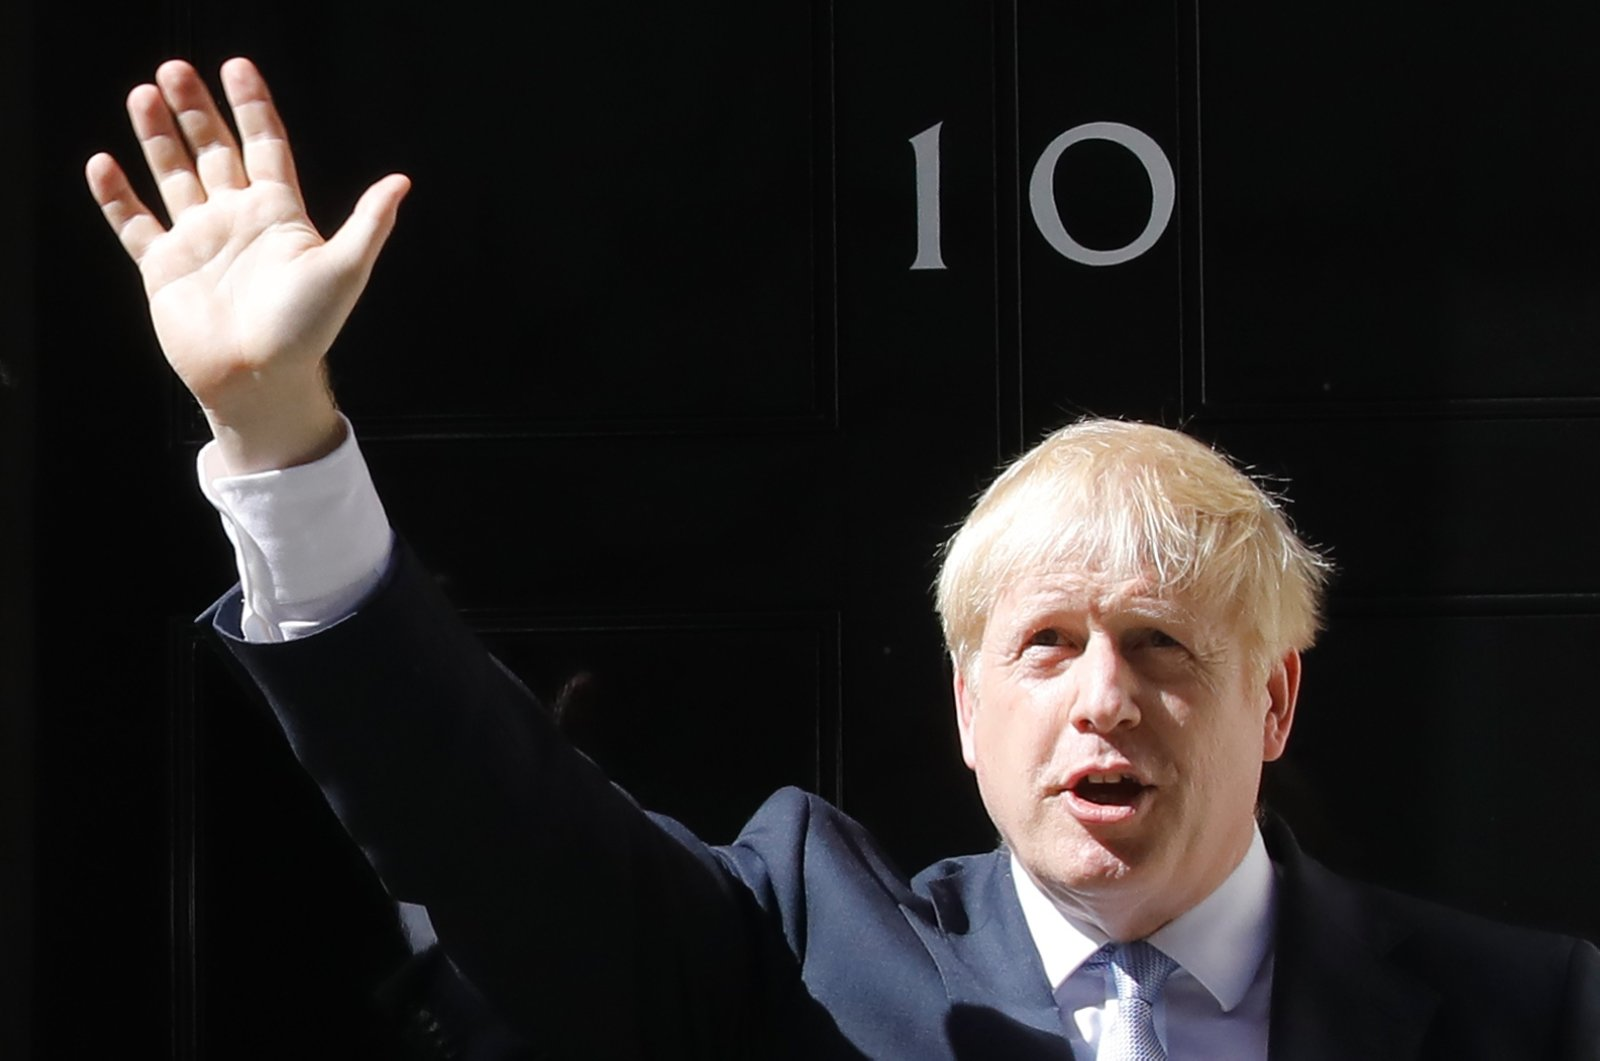 In this file photo taken on July 24, 2019 Britain's new Prime Minister Boris Johnson waves after giving a speech outside 10 Downing Street in London, the day he was formally appointed British prime minister. (AFP Photo)